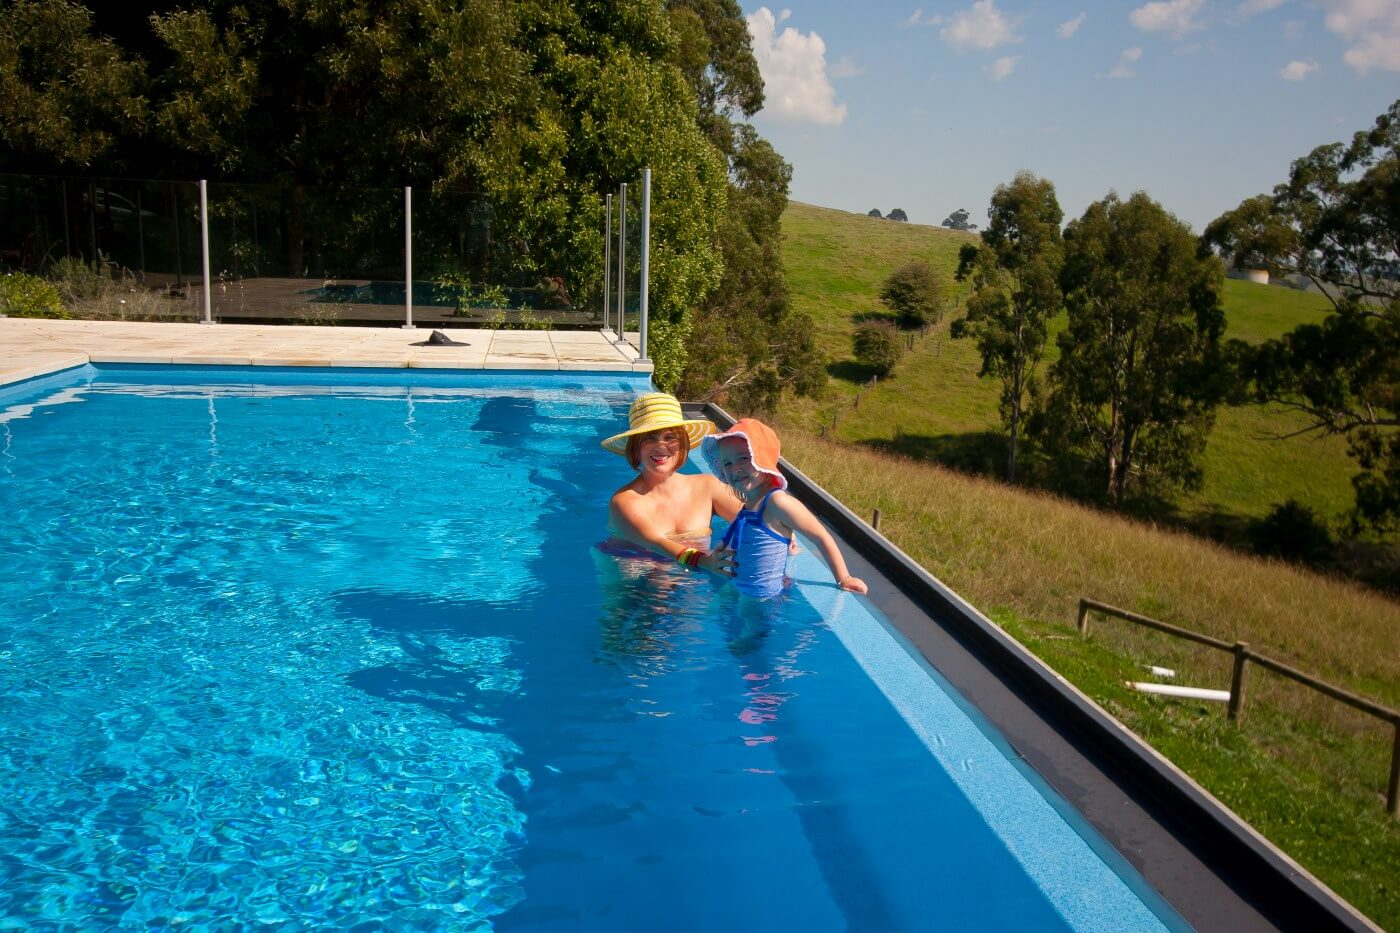 Compass fibreglass infinity pool Sapphire colour Mirboo North VIC